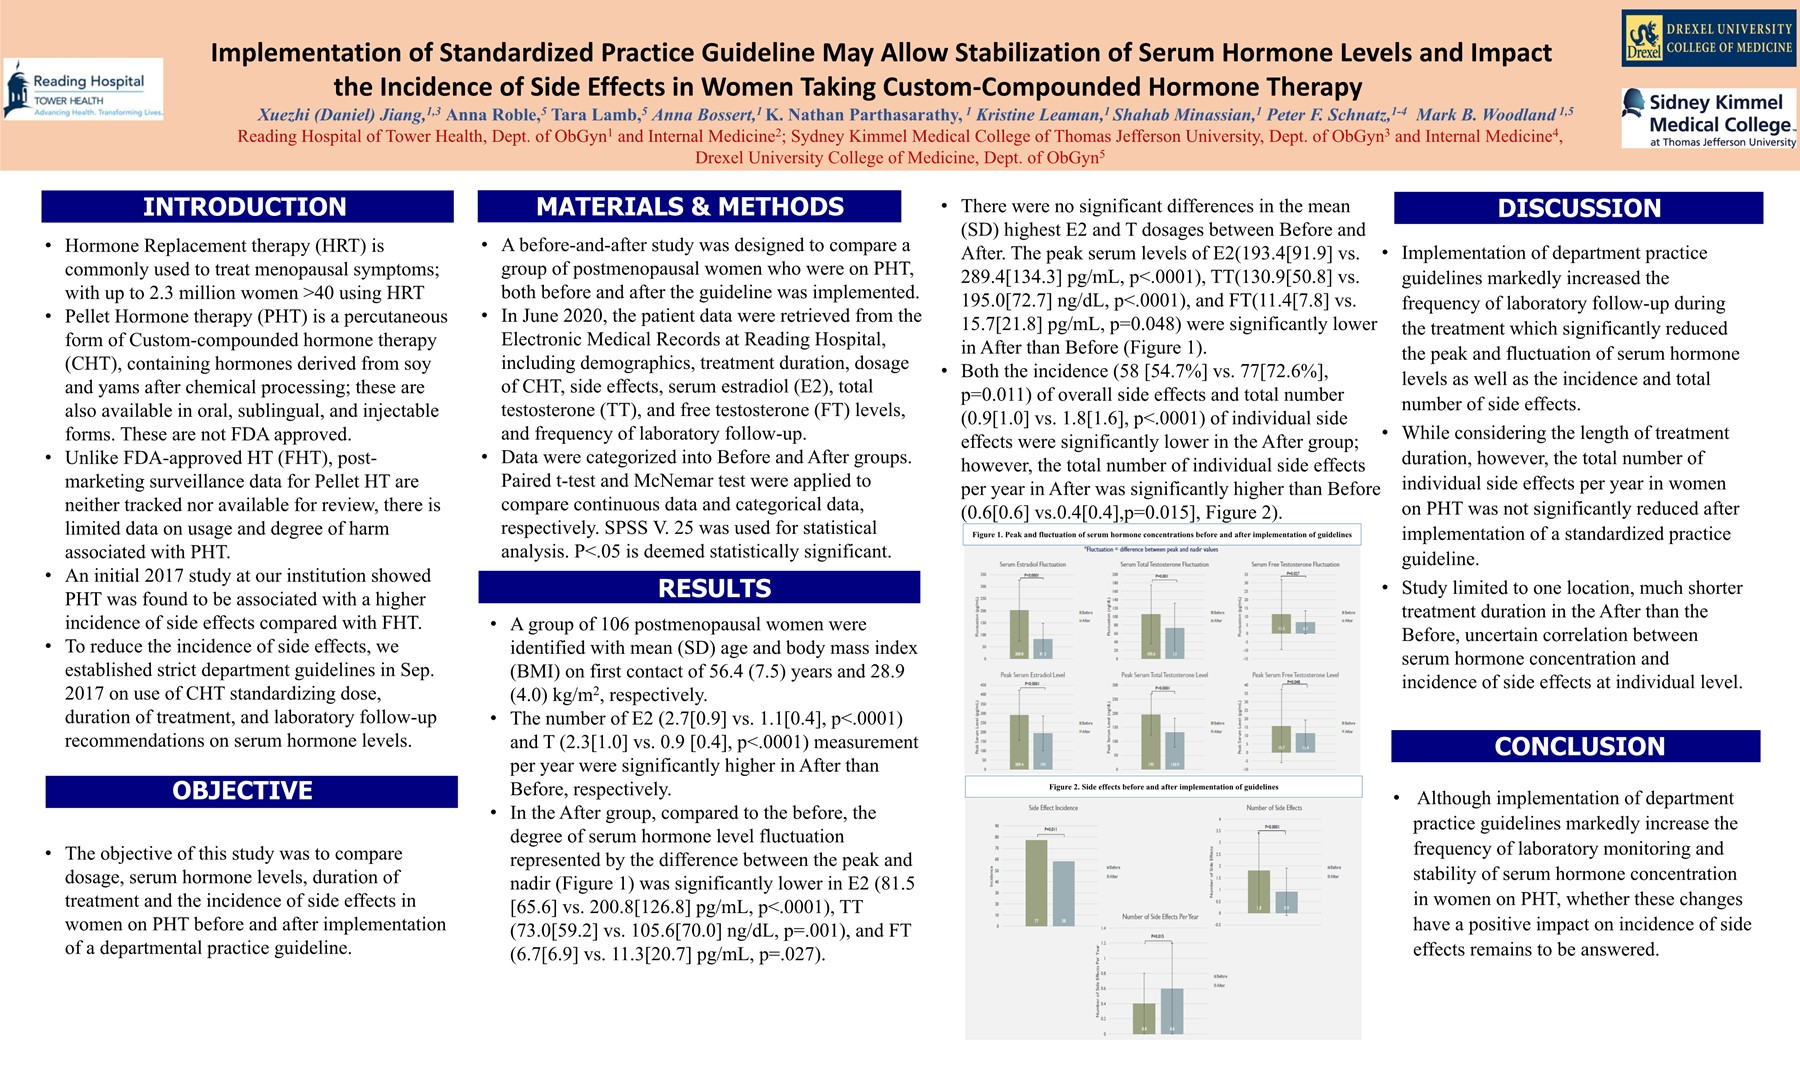 Implementation of Standardized Practice Guideline May Allow Stabilization of Serum Hormone Levels and Impact the Incidence of Side Effects in Women Taking Custom-Compounded Hormone Therapy